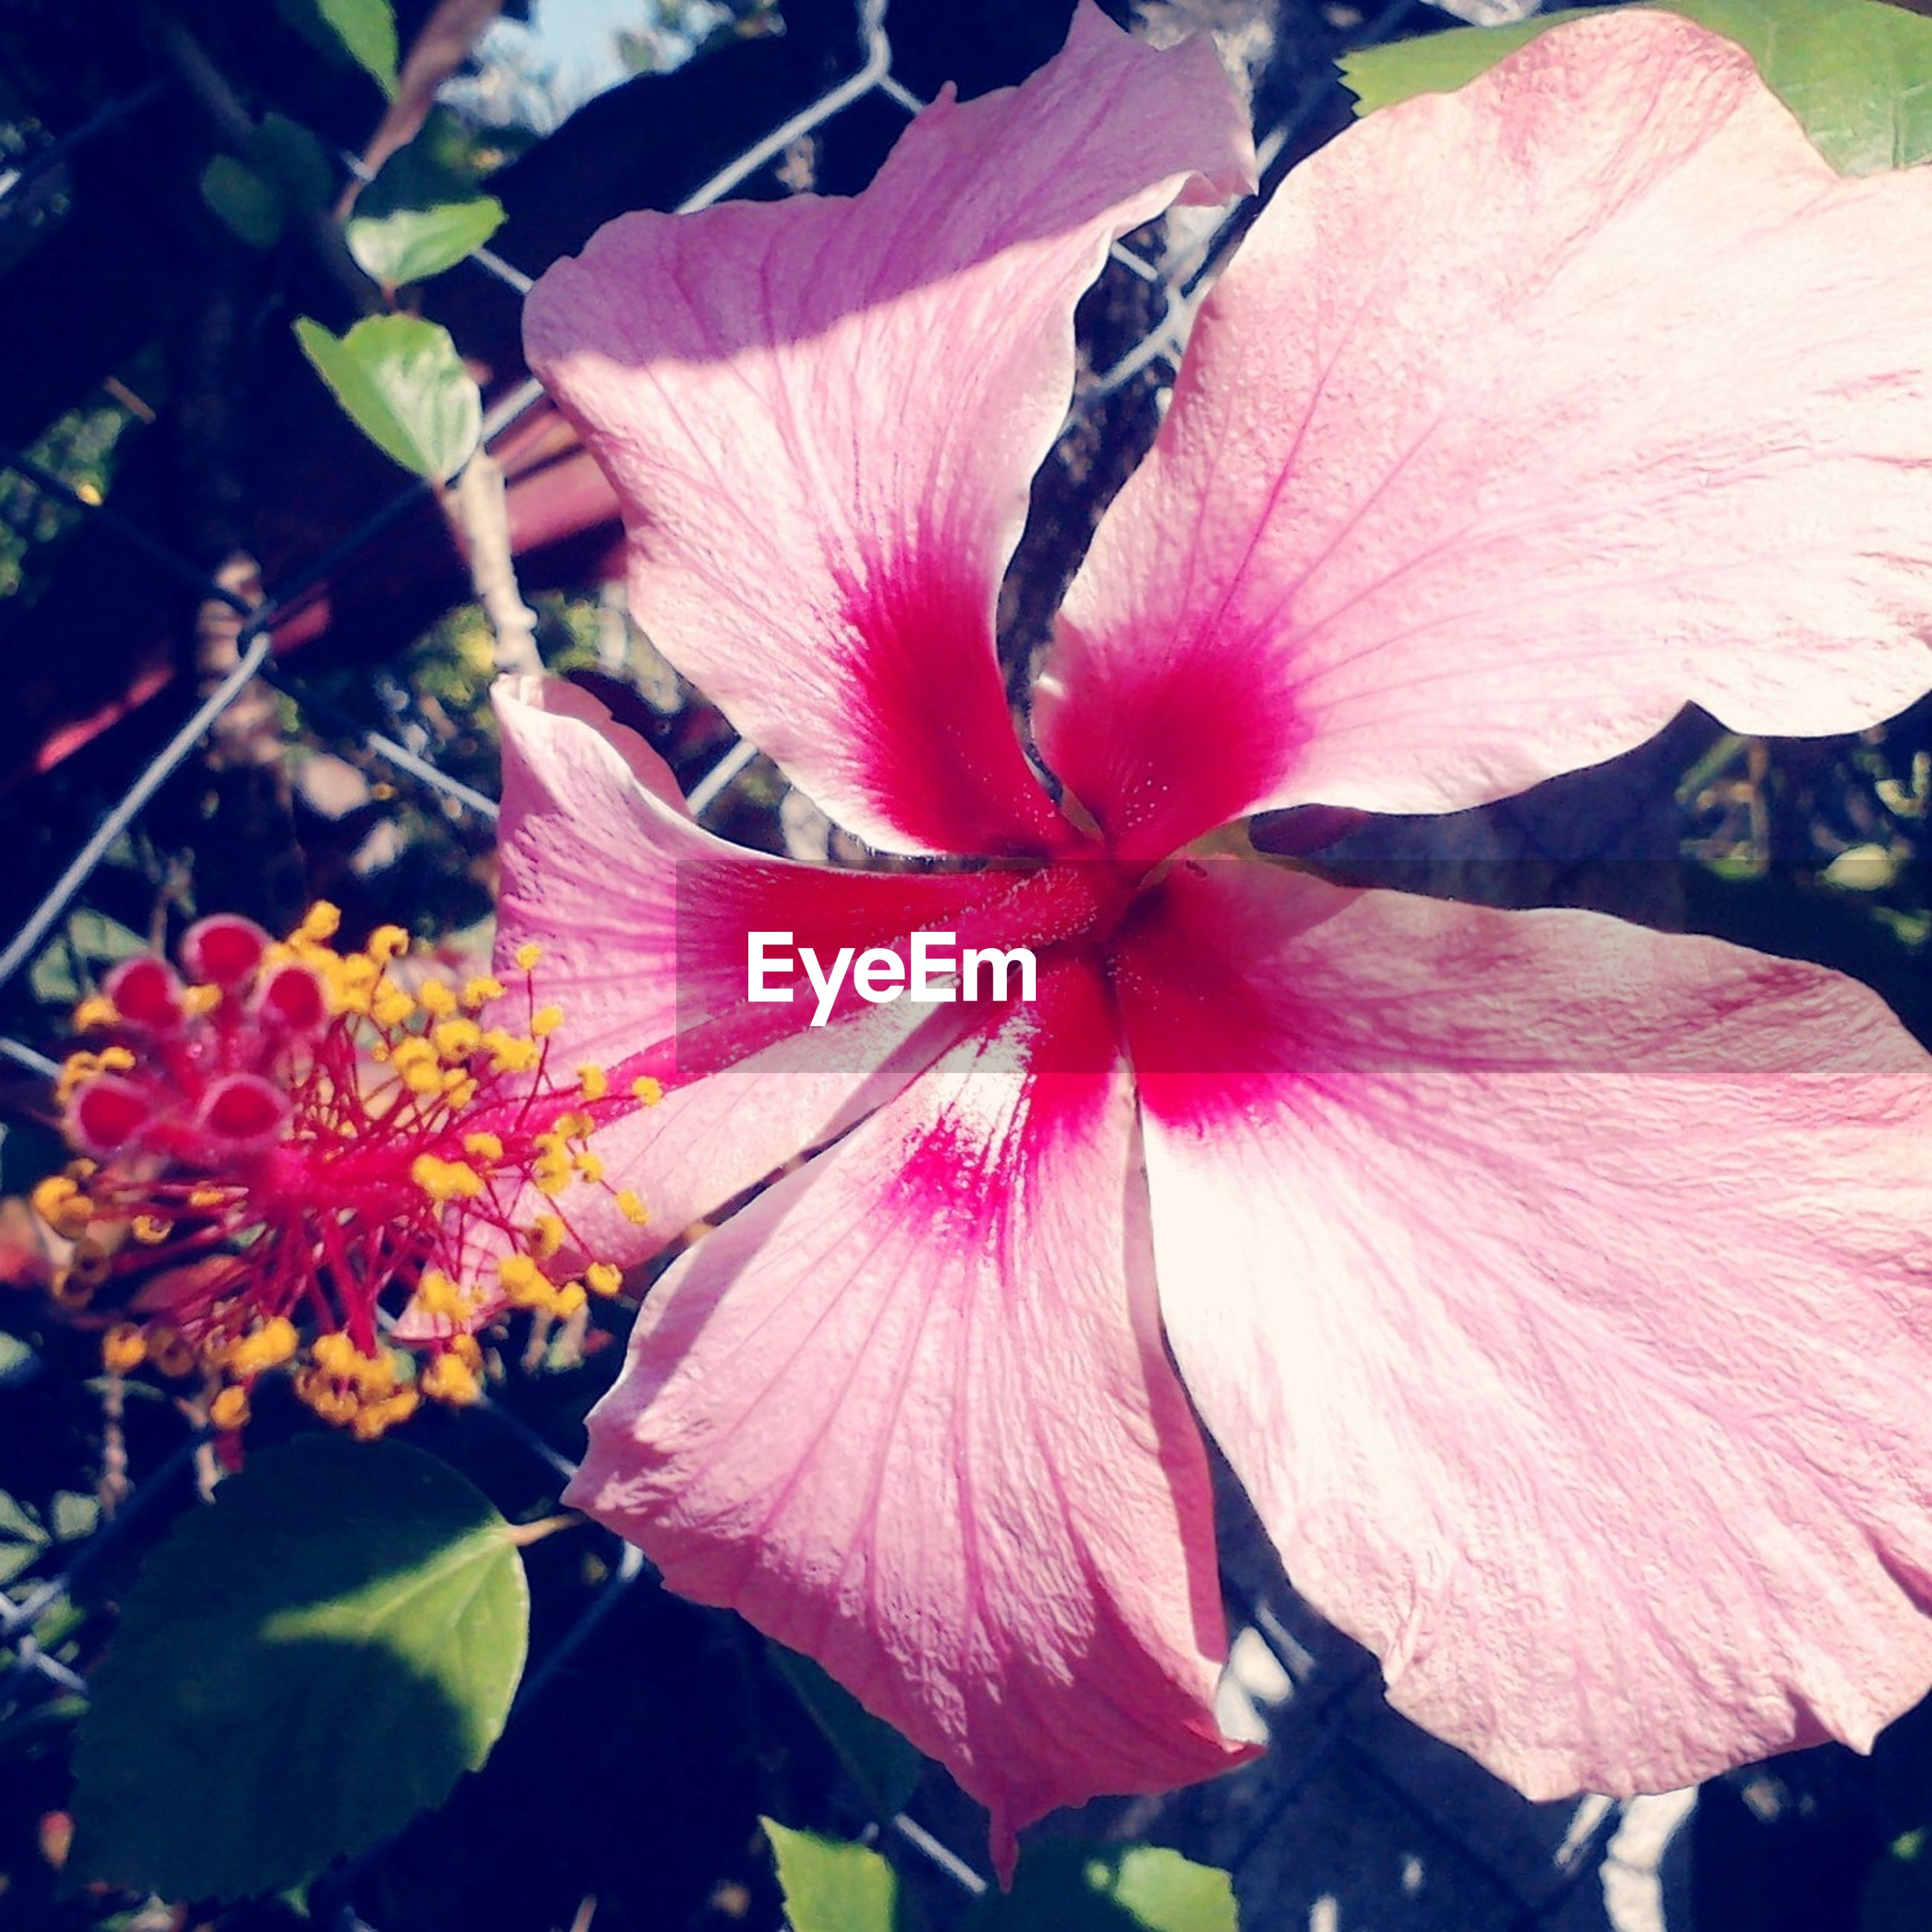 flower, petal, freshness, fragility, flower head, growth, beauty in nature, pink color, close-up, stamen, nature, hibiscus, blooming, pollen, leaf, plant, in bloom, single flower, focus on foreground, red